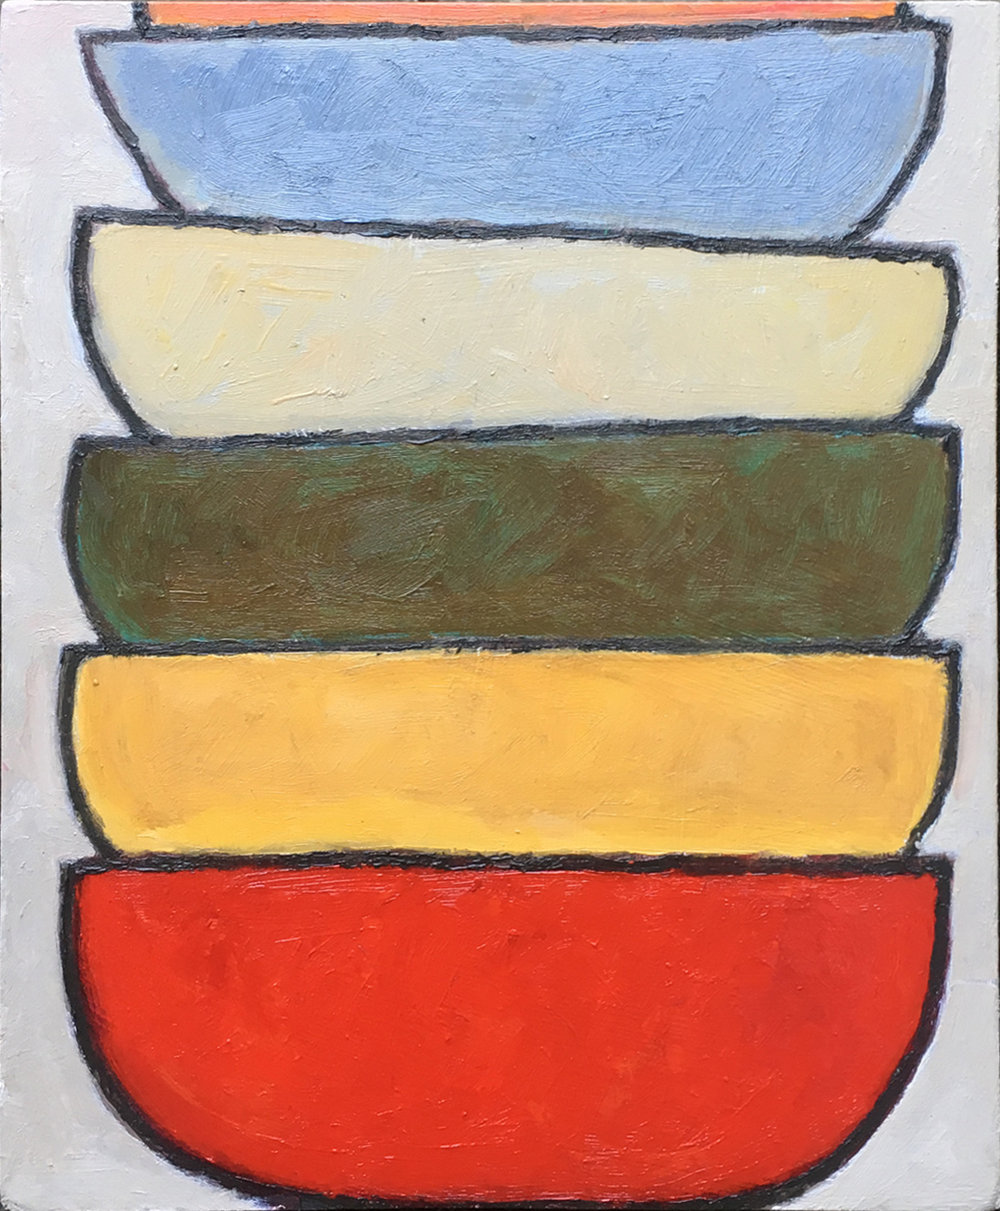 #6 (2018), oil on MDF board, 19cm x 23cm. Price on request.